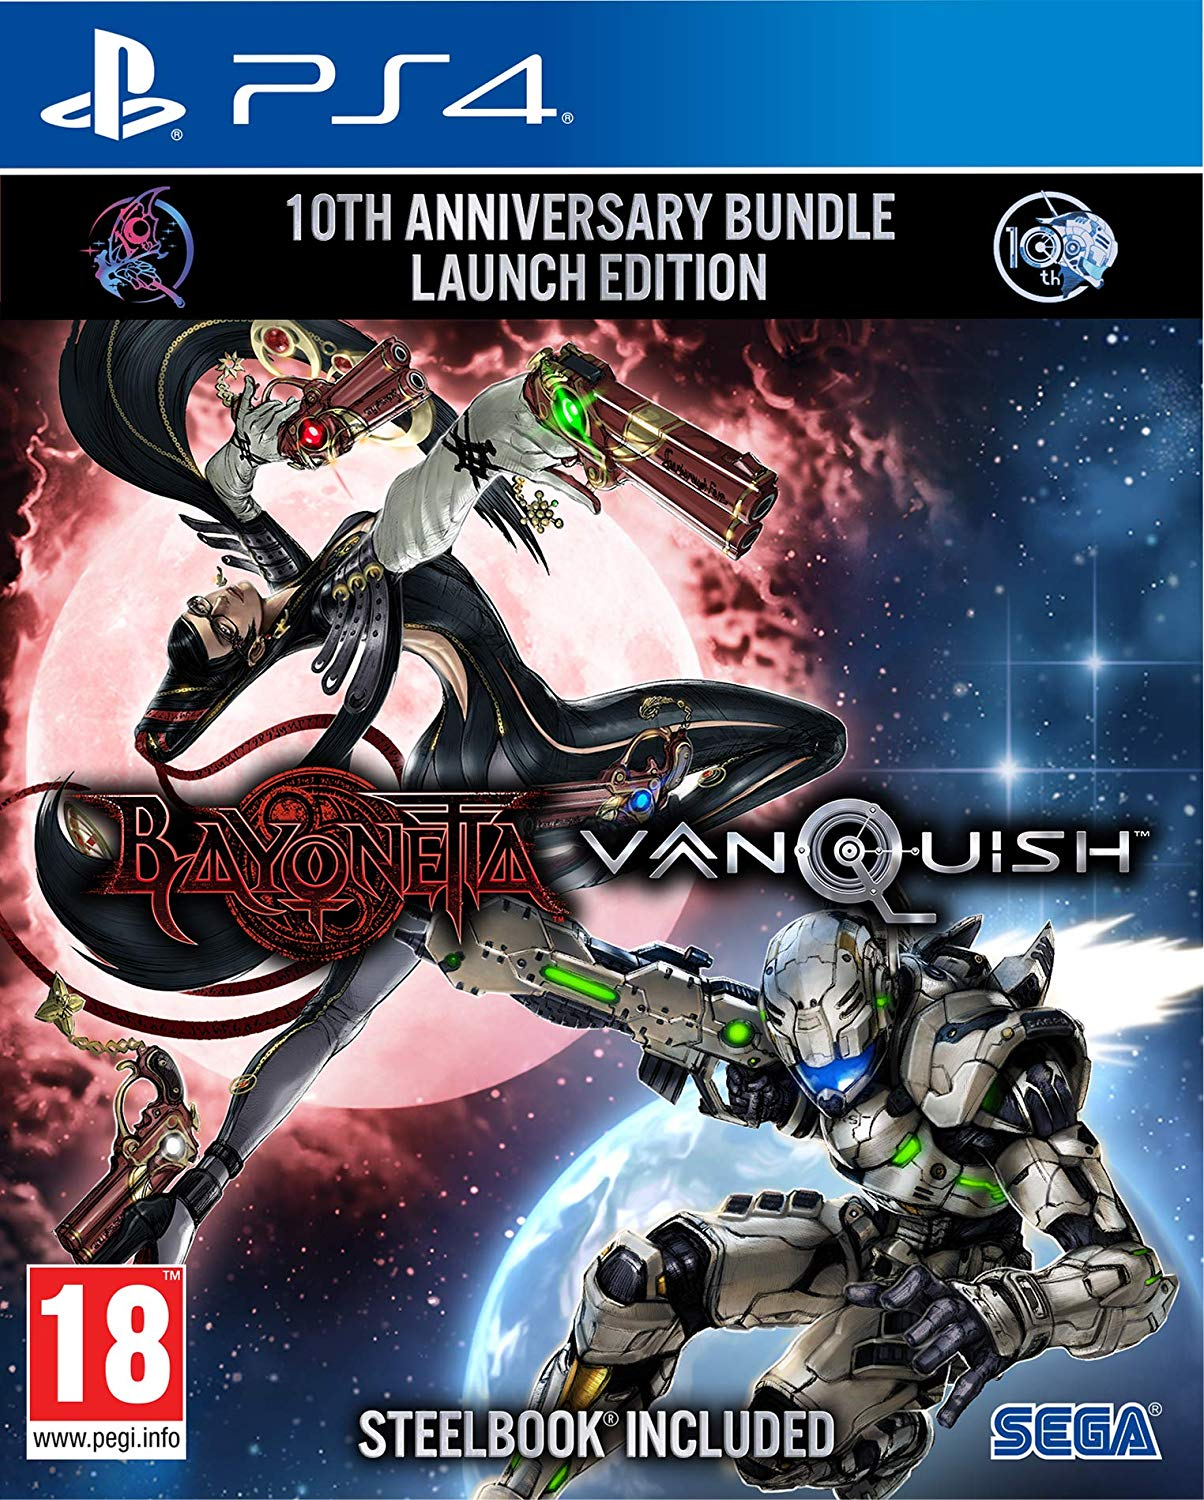 Bayonetta Vanquish 10th Anniversary Bundle (Steelbook Edition)